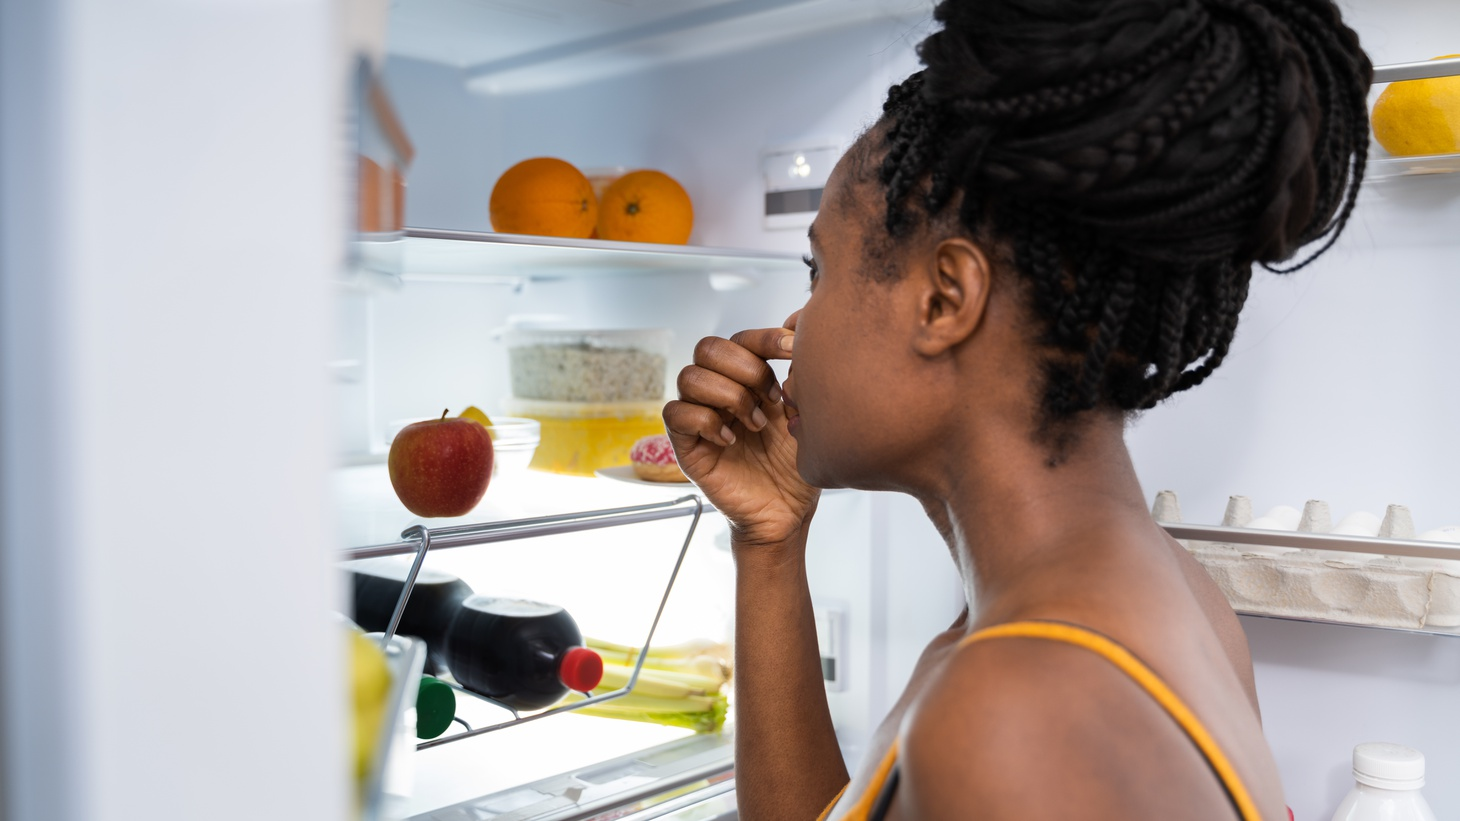 From not being able to smell minty toothpaste to smelling something spoiled in the fridge of fresh groceries, people suffering from COVID-induced anosmia describe losing and then regaining their sense of smell.